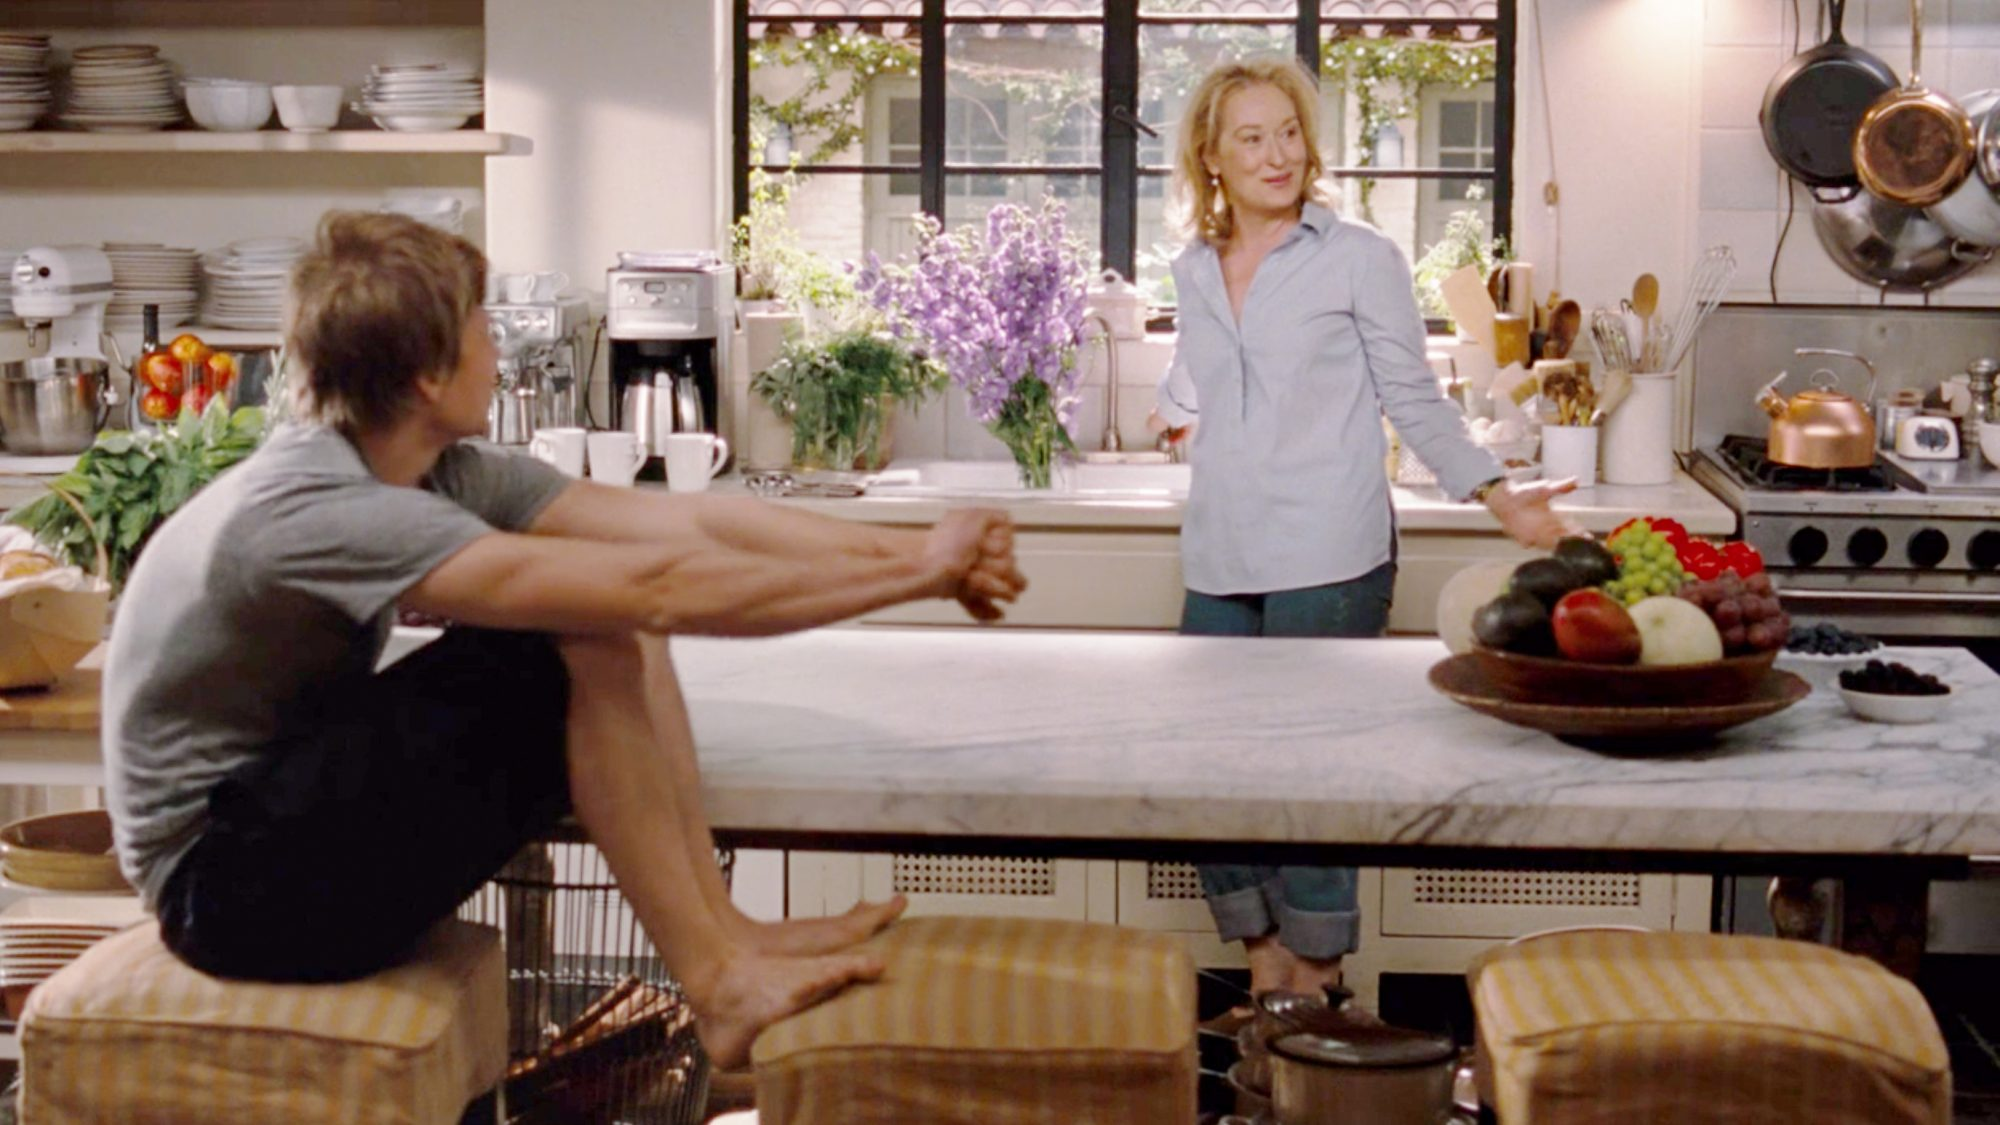 It's Complicated Movie kitchen, directed by Nancy Meyers, starring Meryl Streep